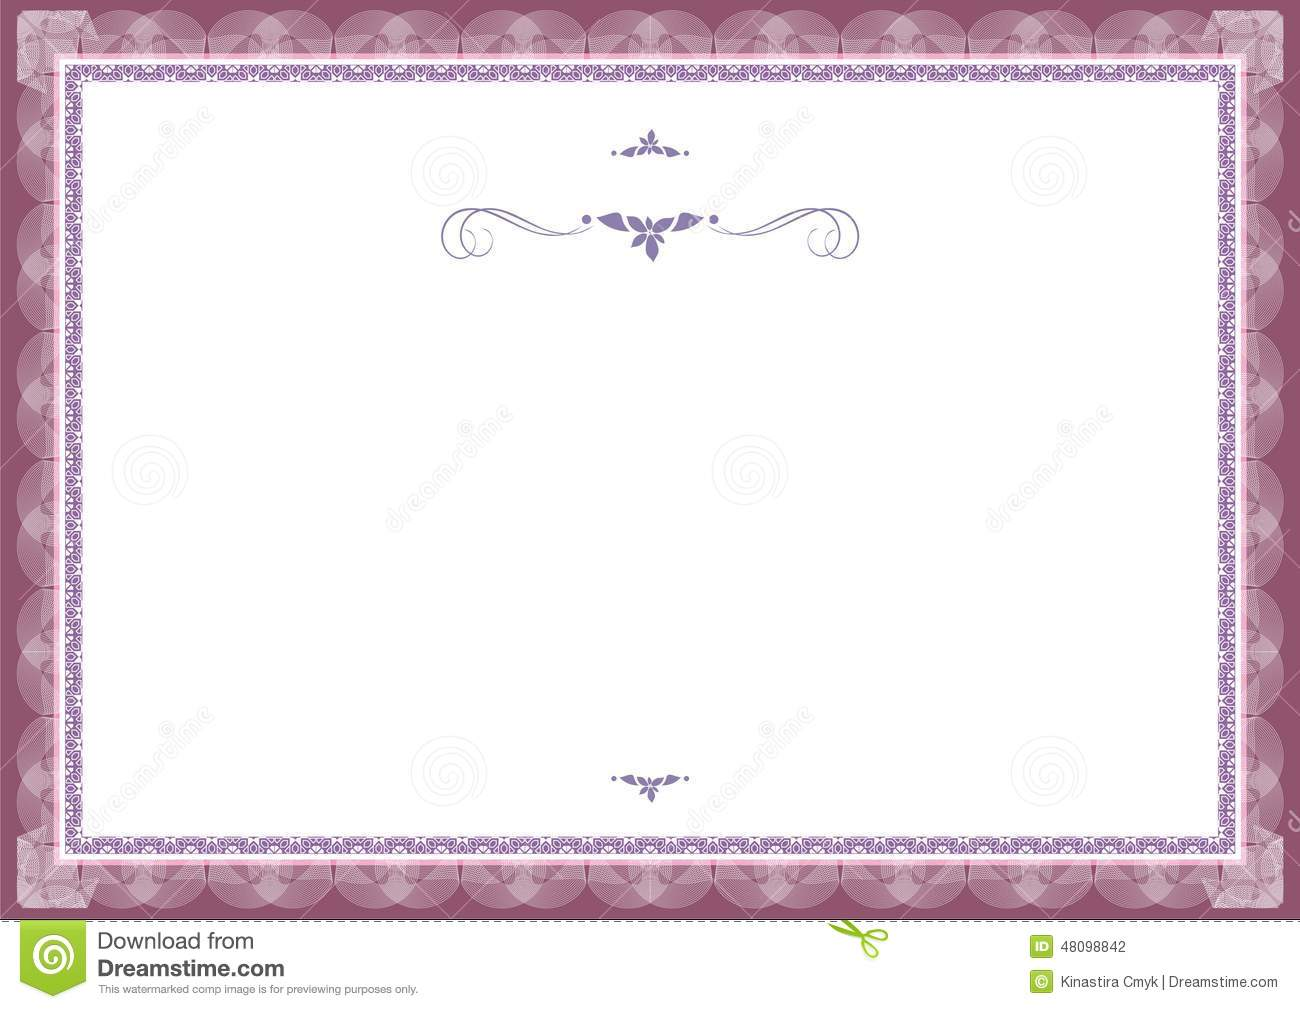 Stock Photo: Certificate background templates3. Image: